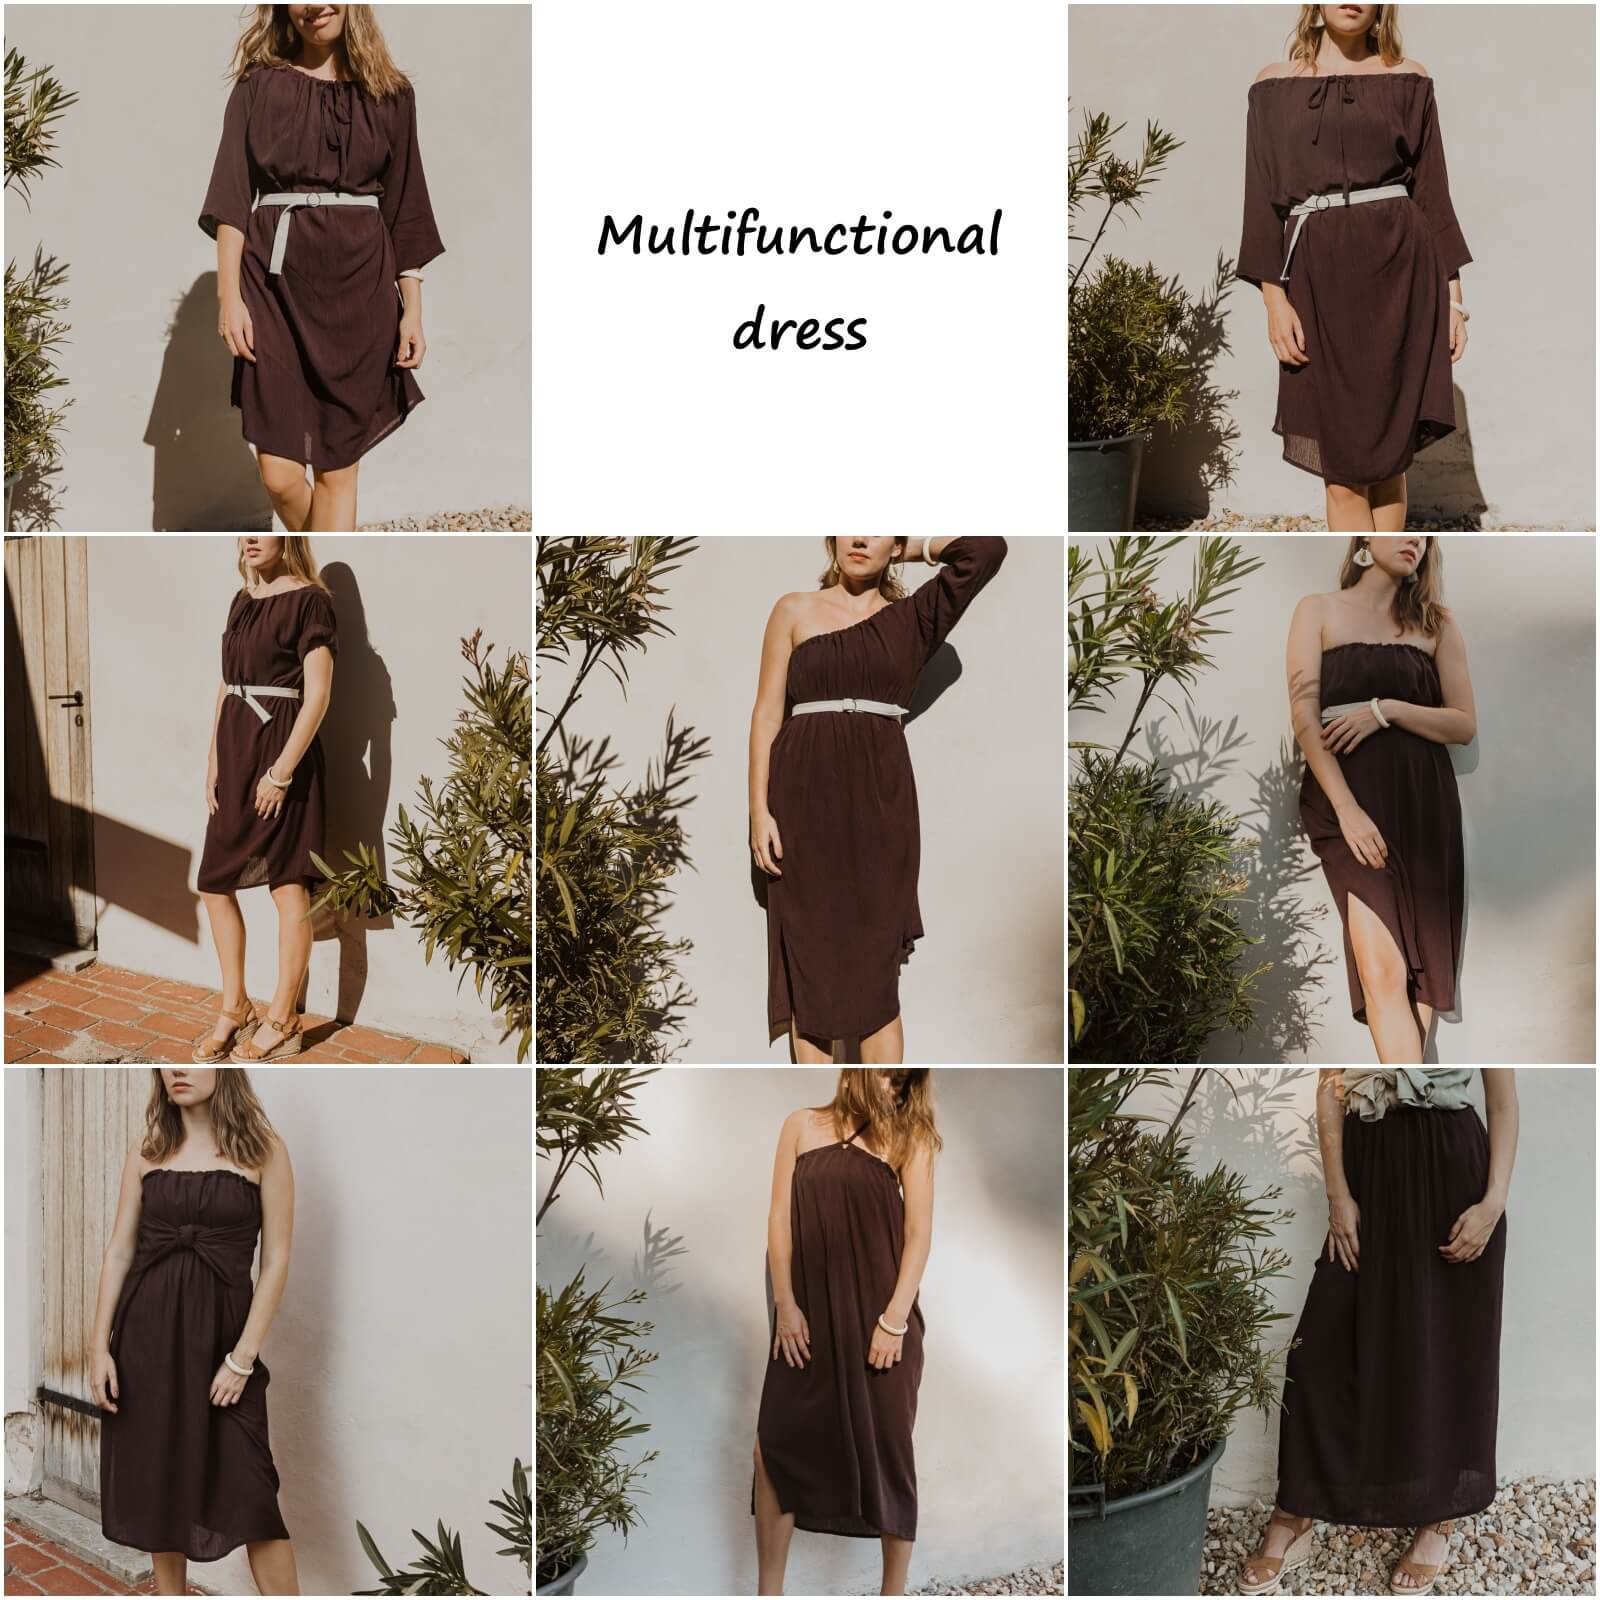 Variable dress that you can wear in many various ways.